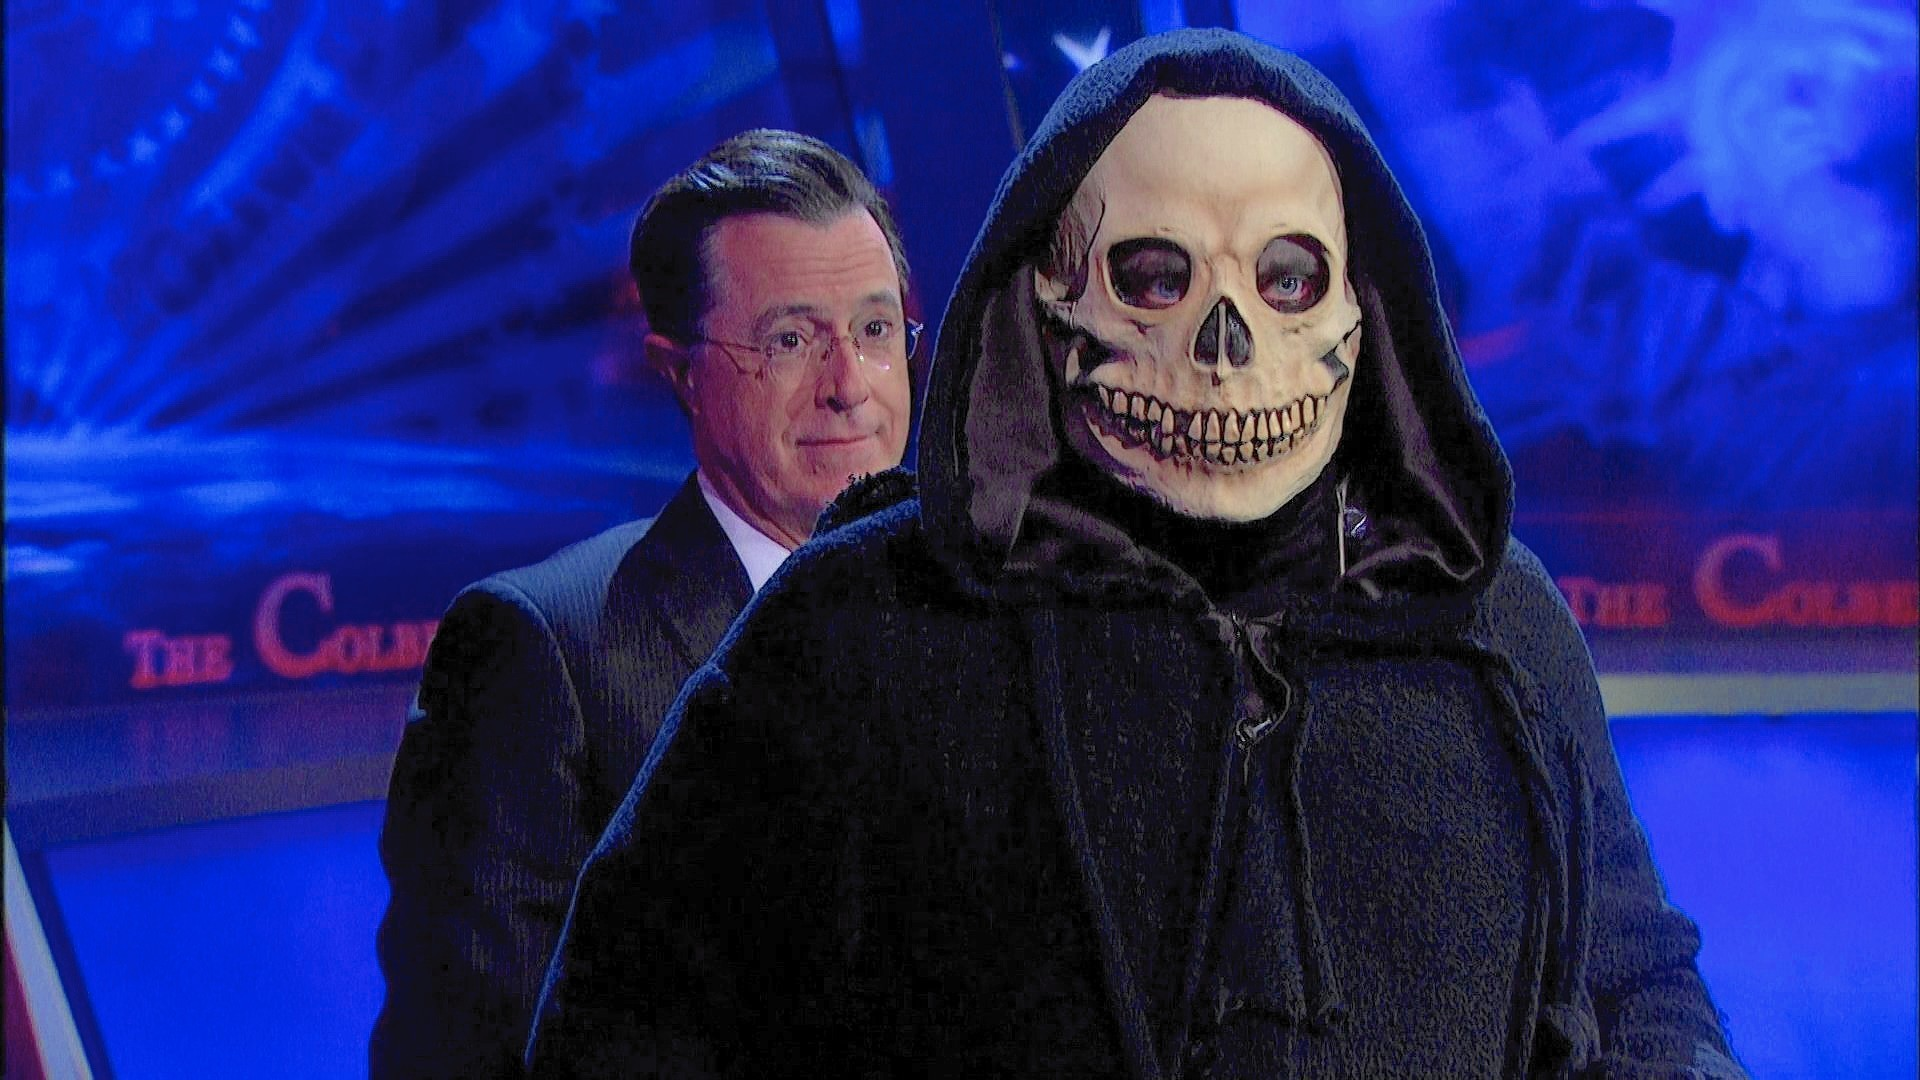 Stephen Colbert departs, and his Nation mourns